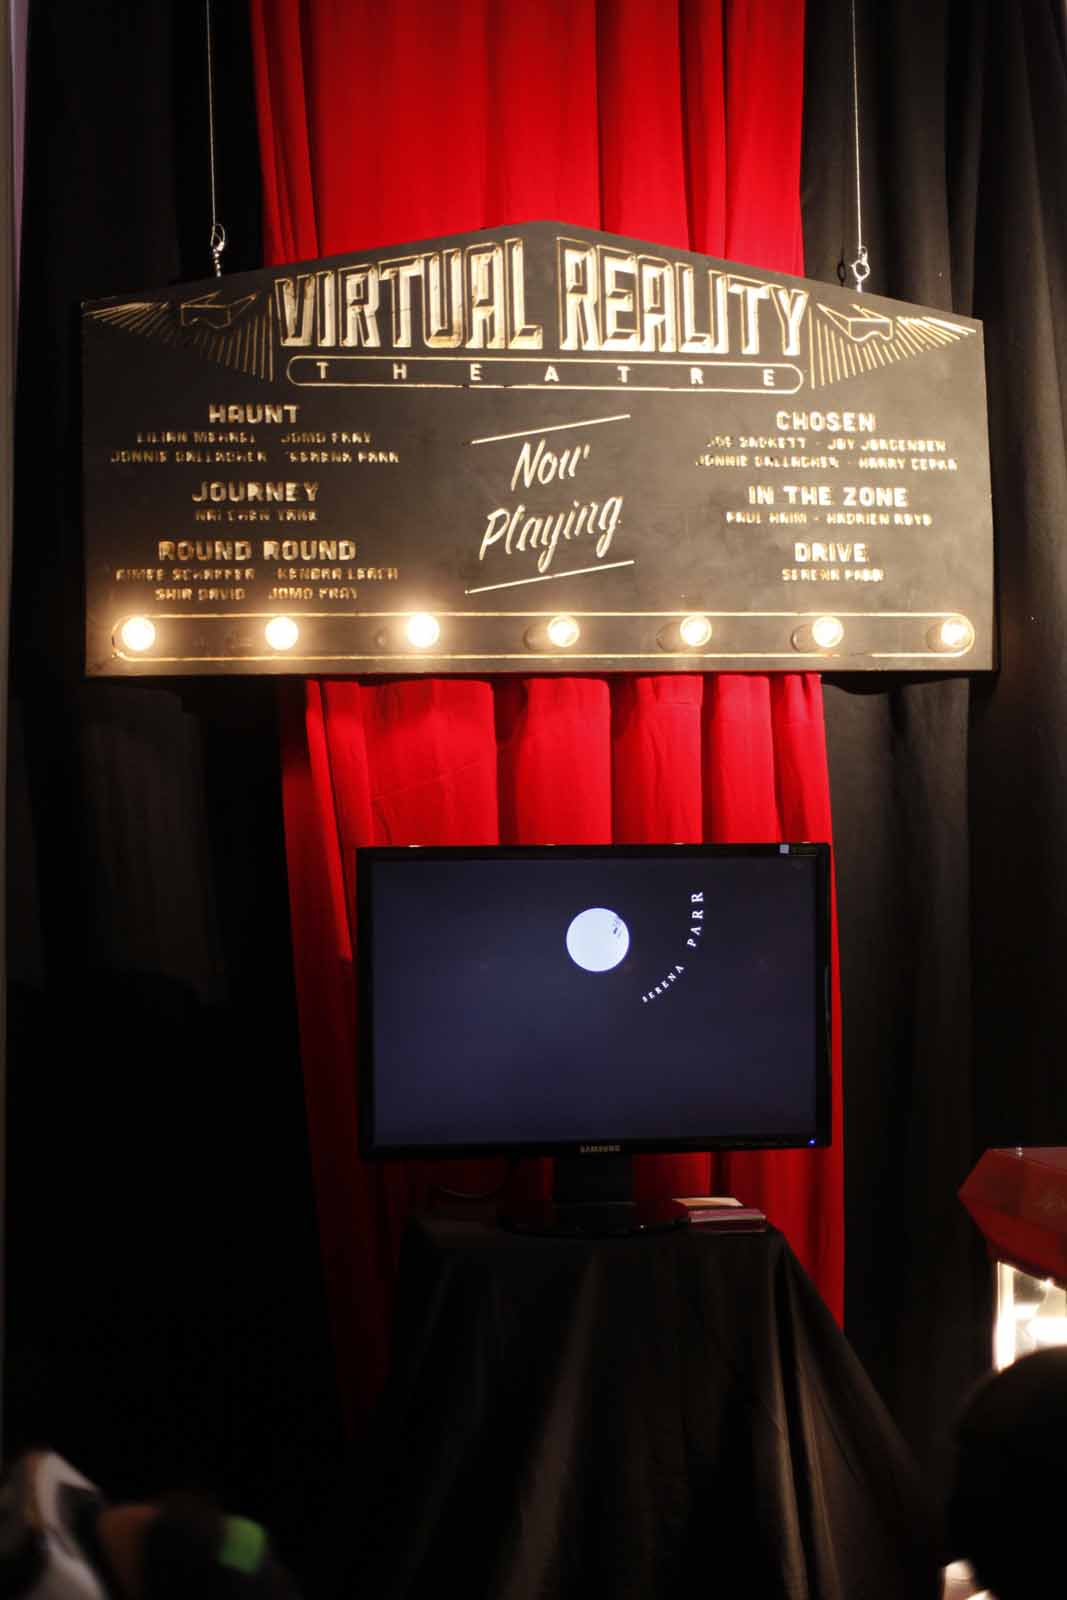 a sign for the Virtual Reality Theatre